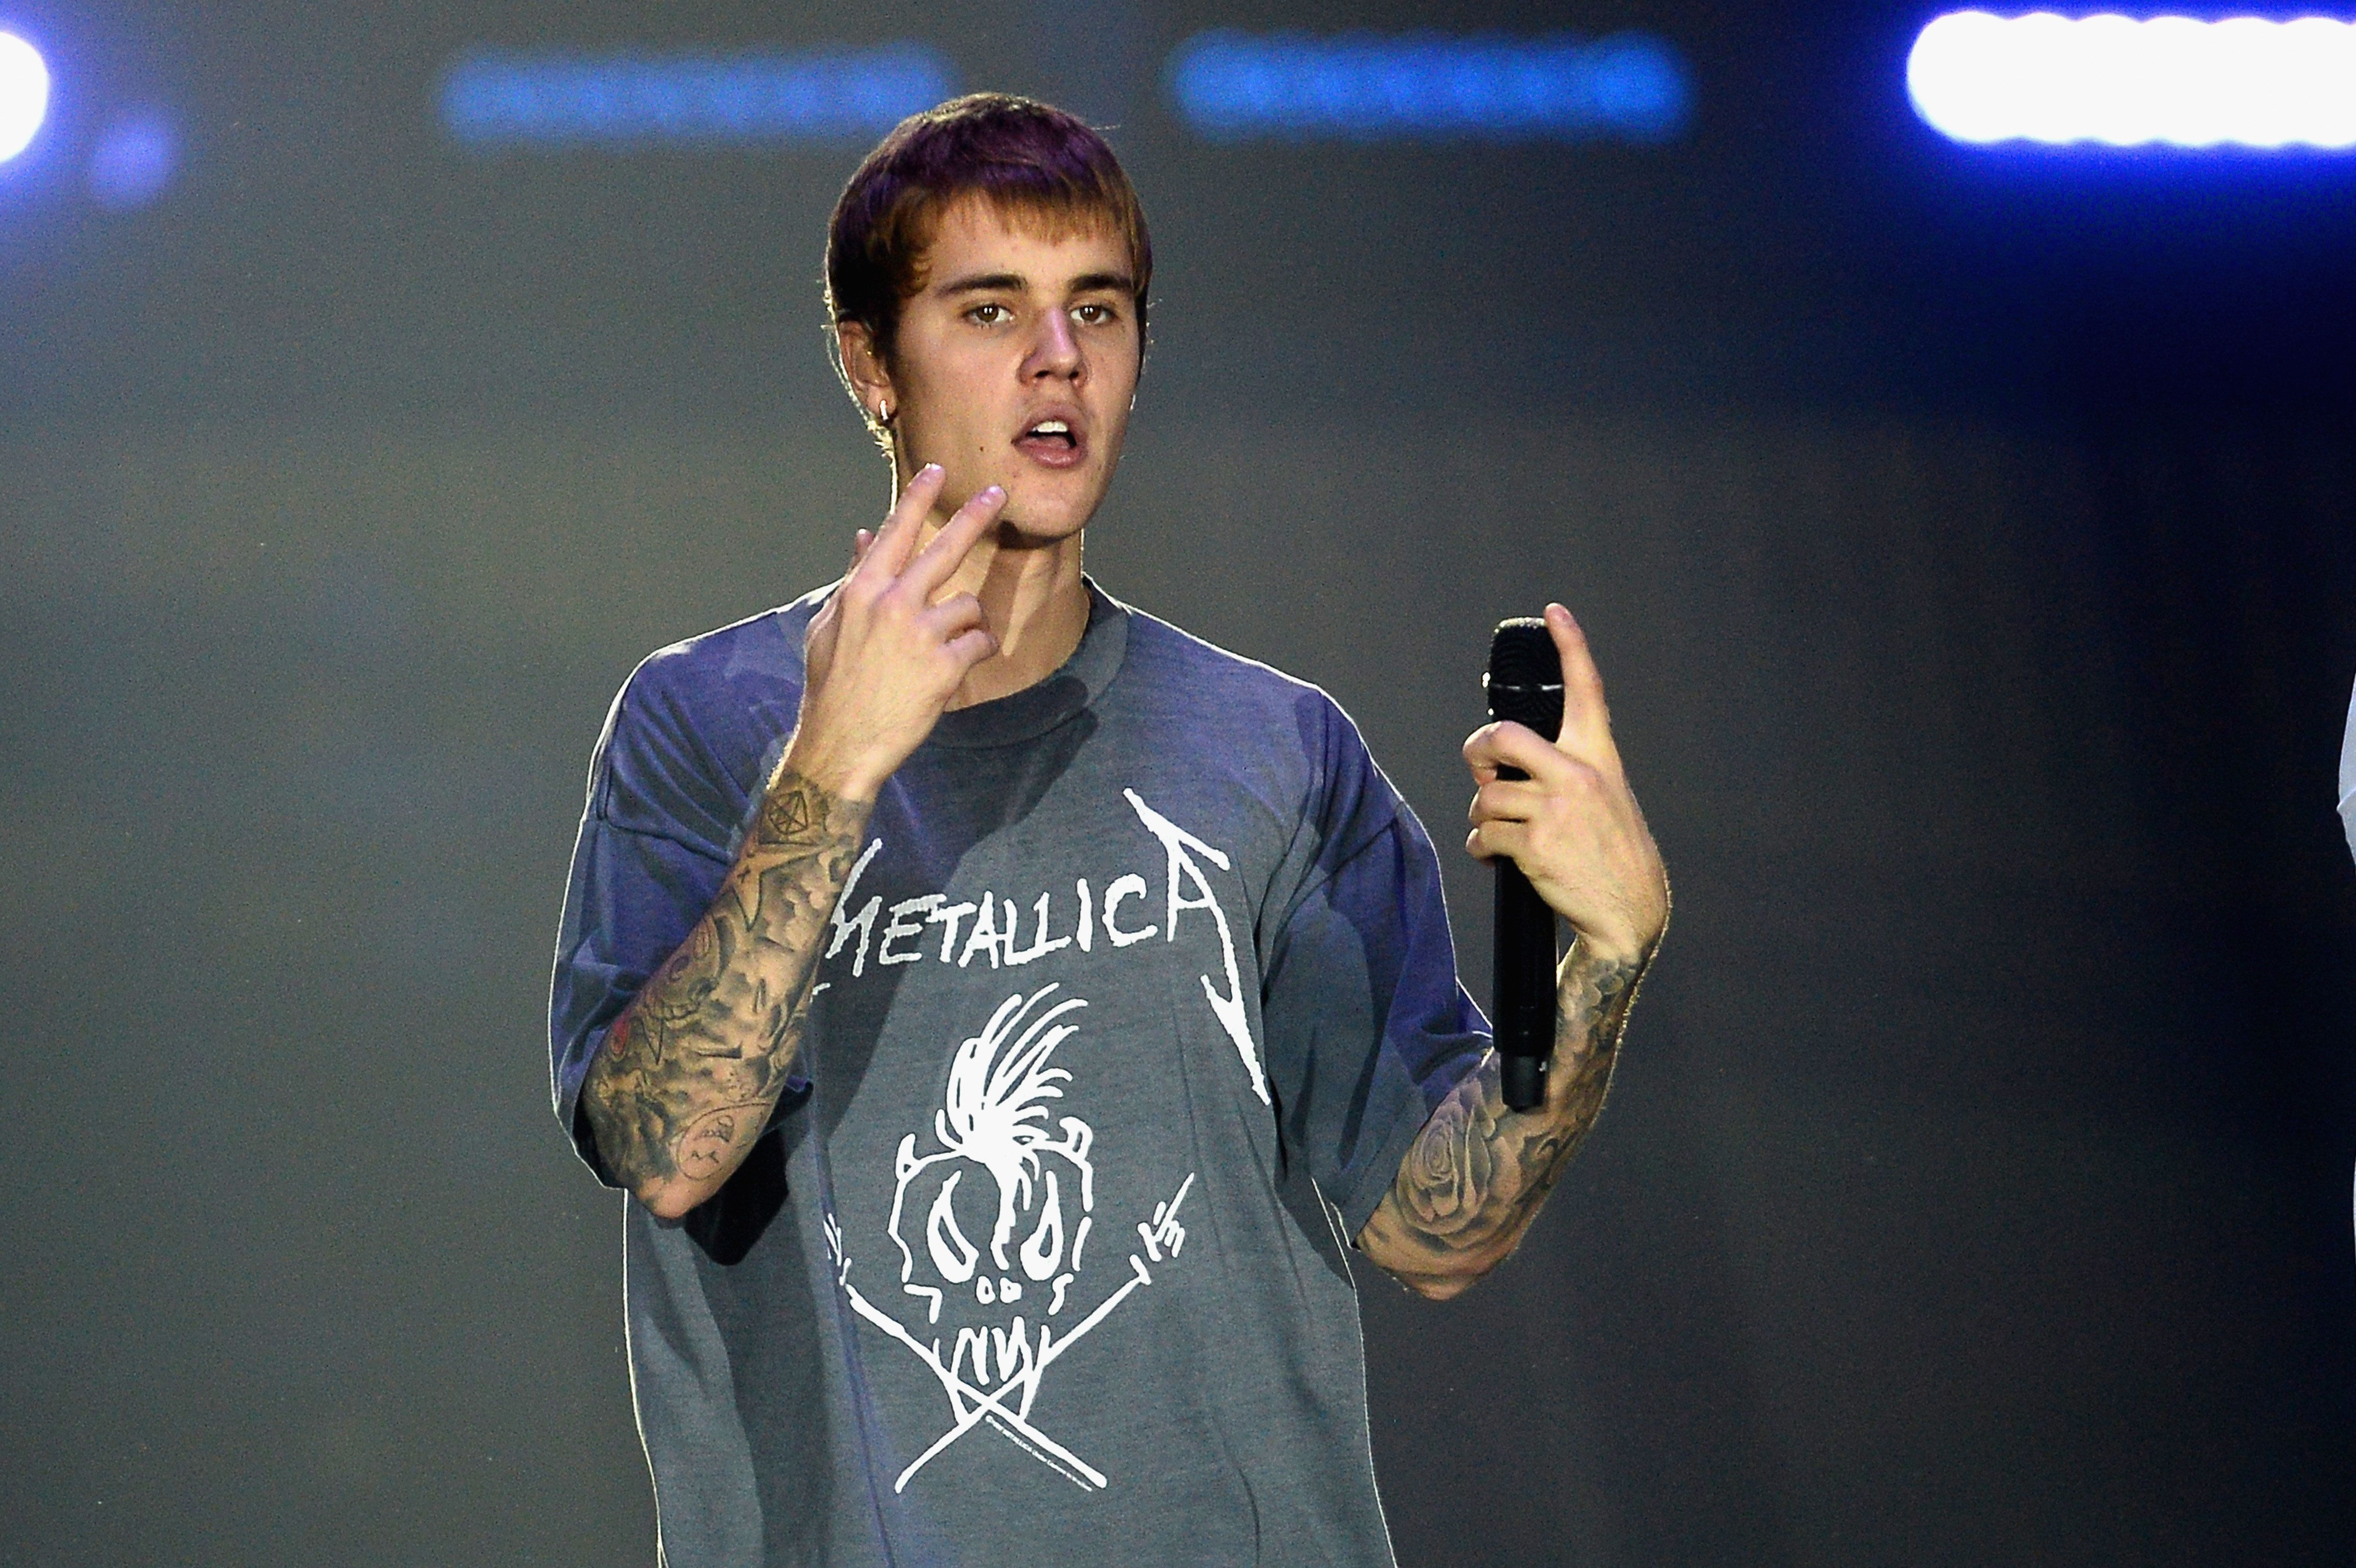 Justin Bieber Appears To Punch Fan Who Leaned Into His Car In The